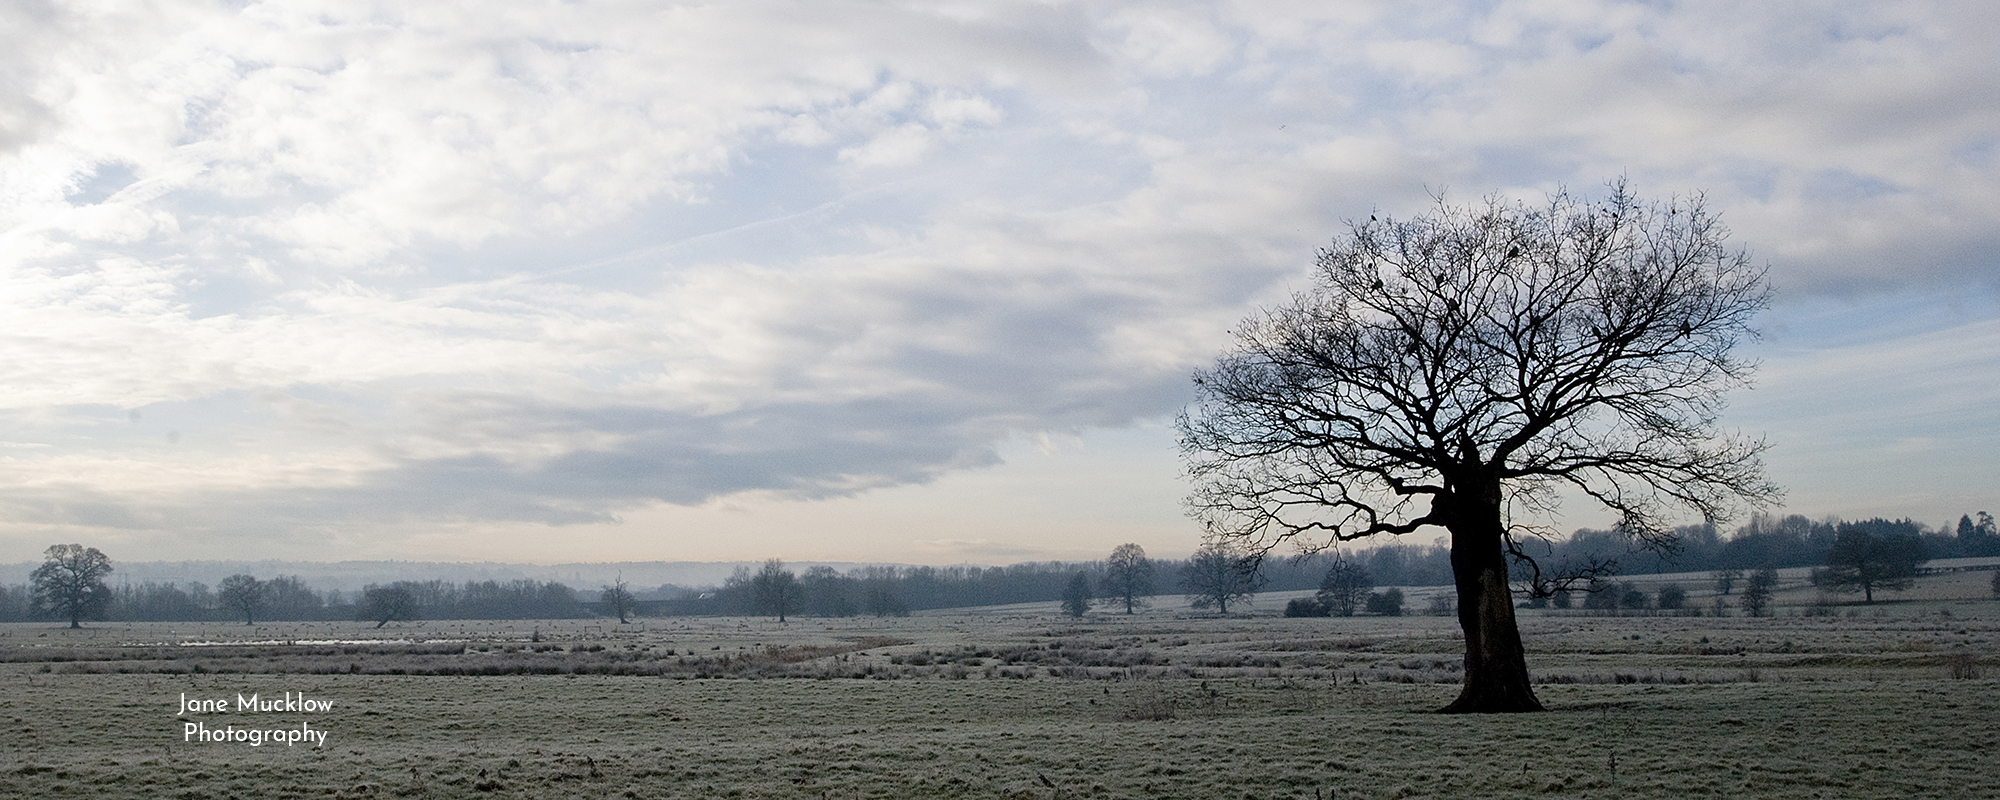 Photo by Jane Mucklow of the Lone Tree and a frosty misty sunrise, view from Otford to Sevenoaks, Kent, available as a canvas for your wall.